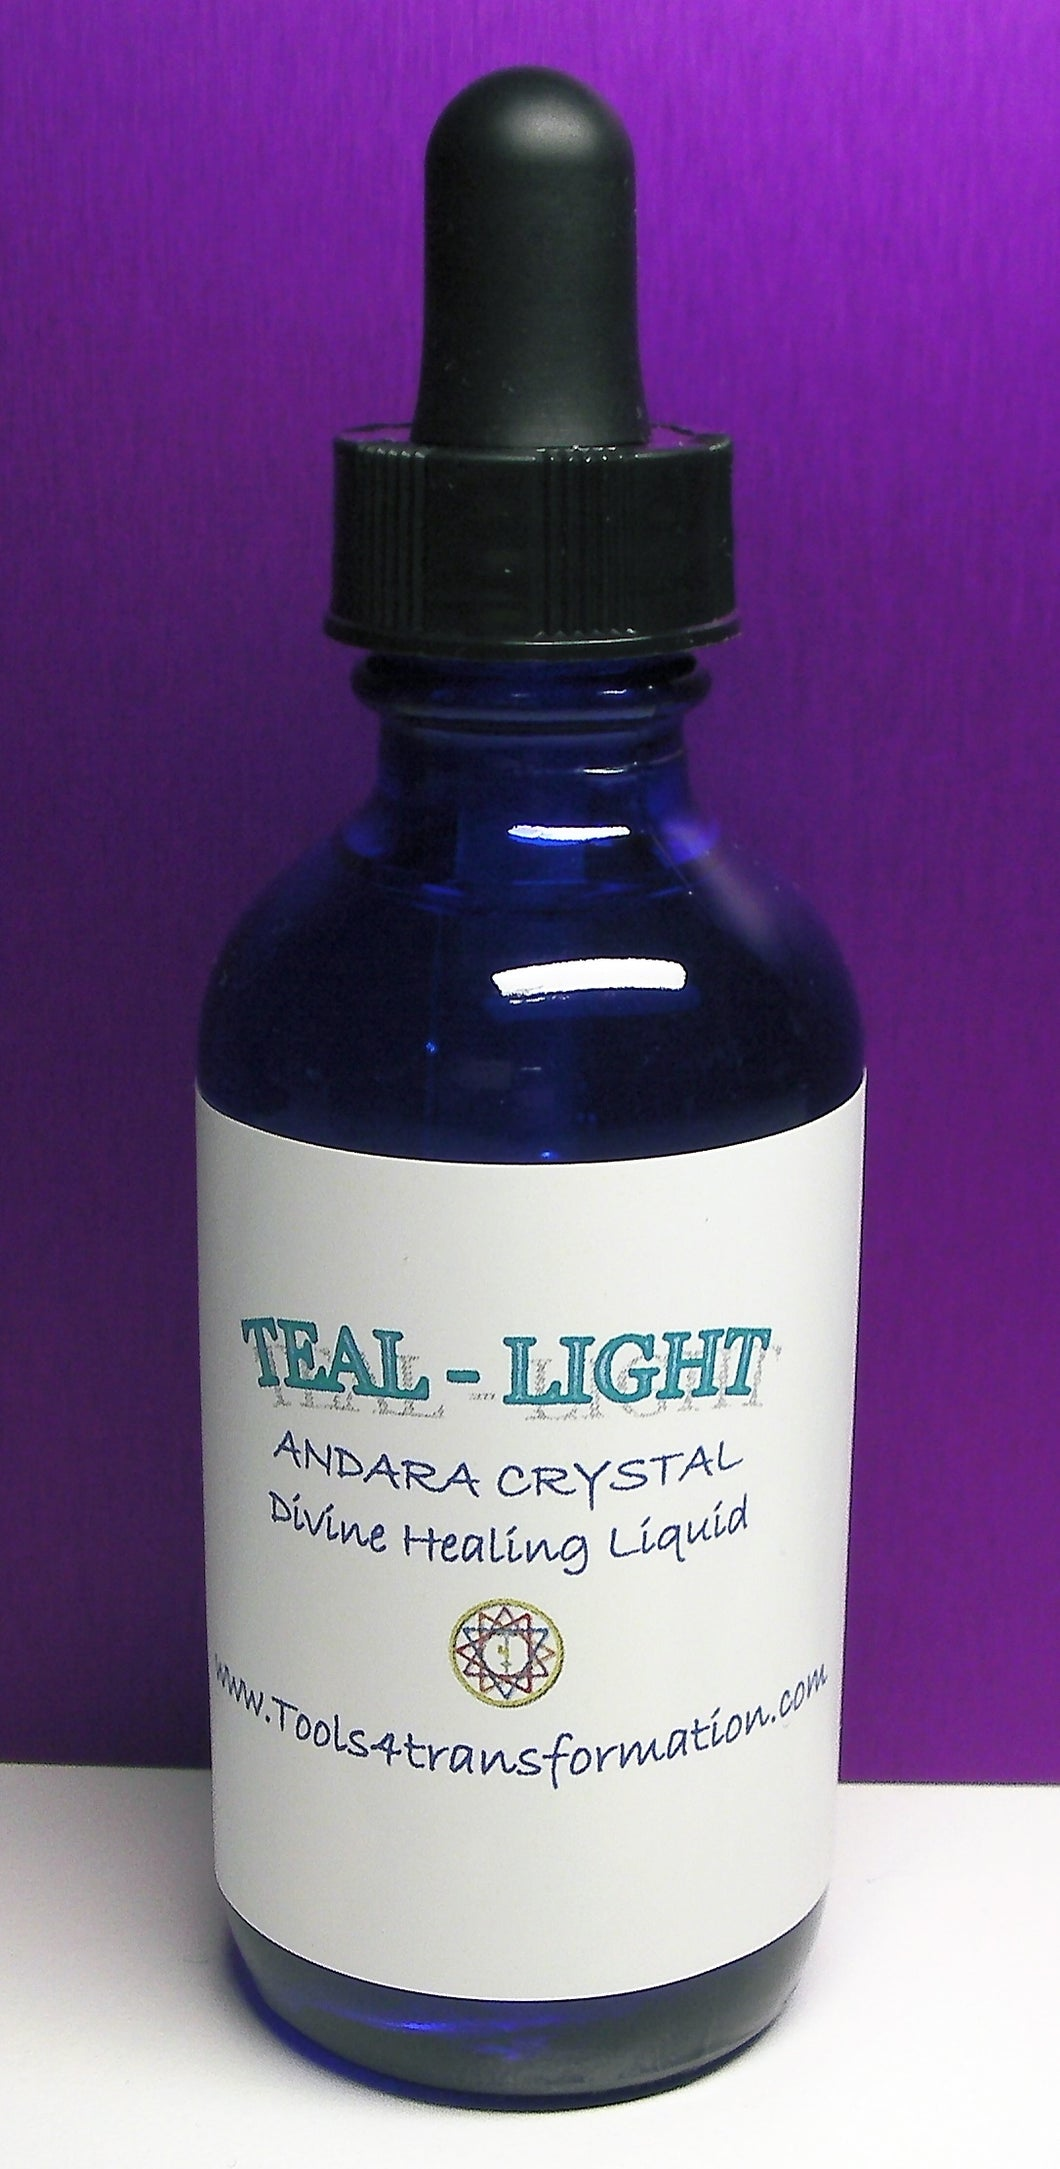 Teal - Light Andara Crystal Liquid